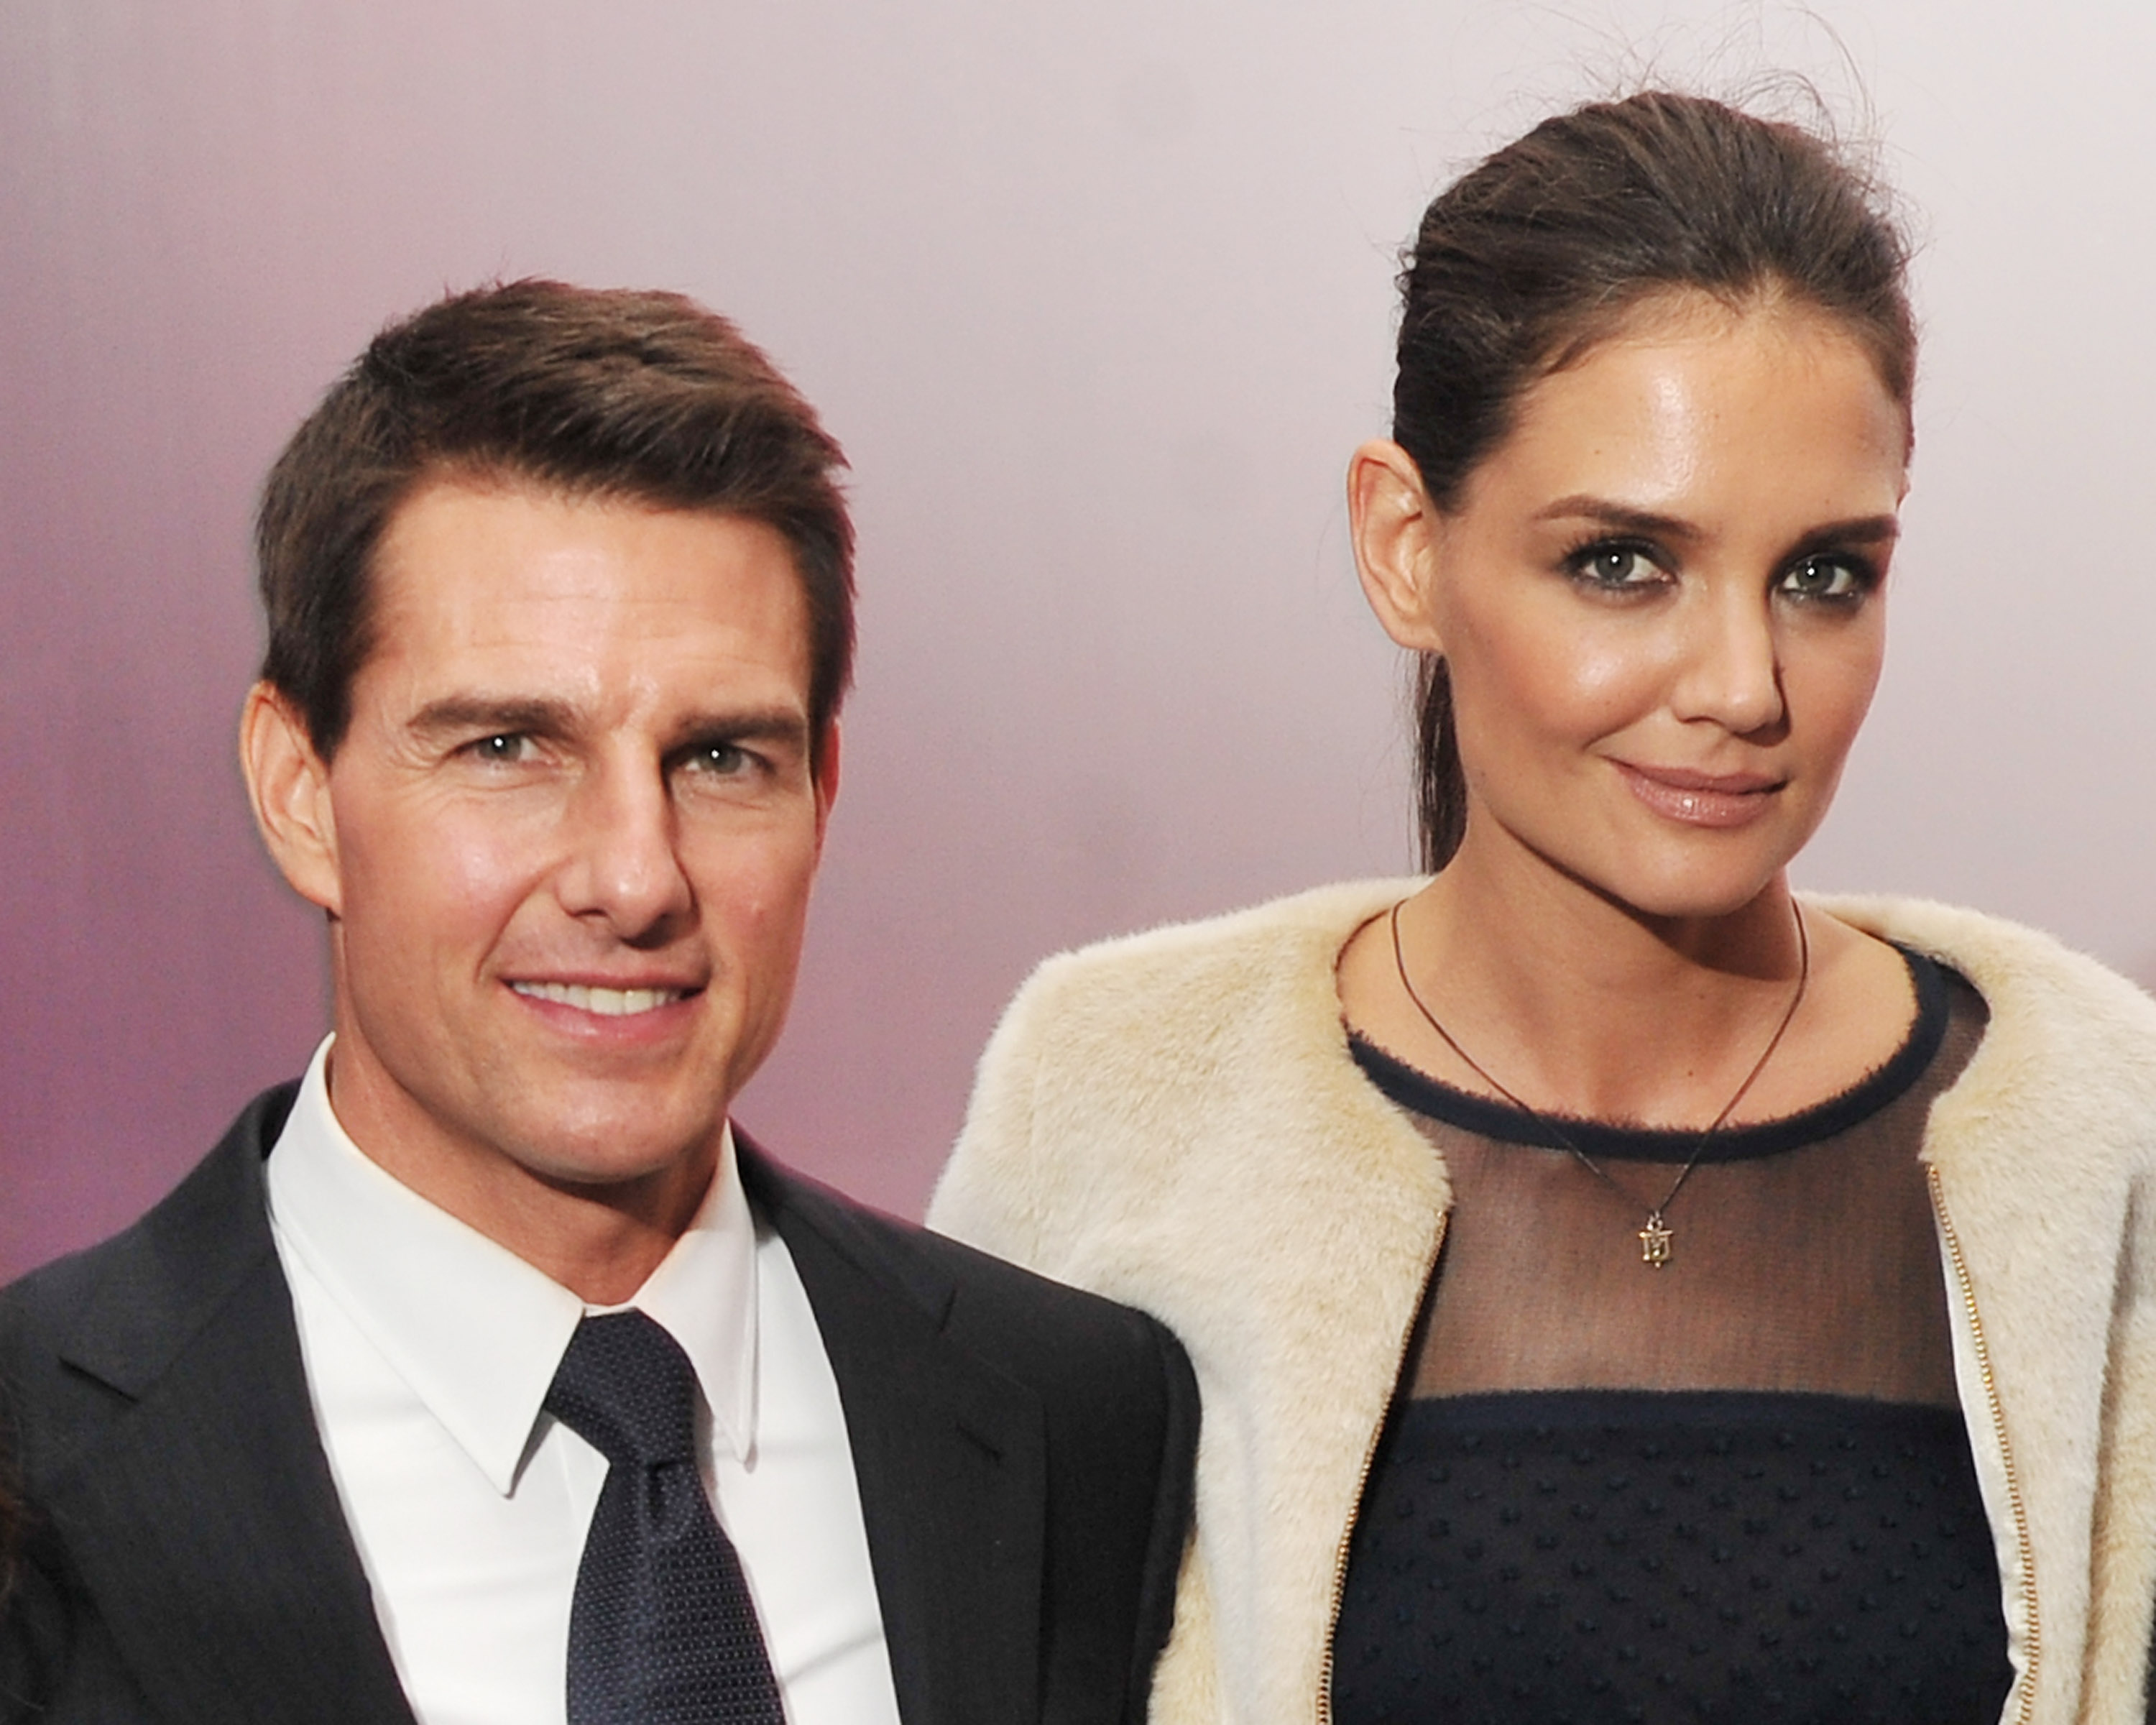 """Mission: Impossible - Ghost Protocol"" U.S. Premiere - After Party"